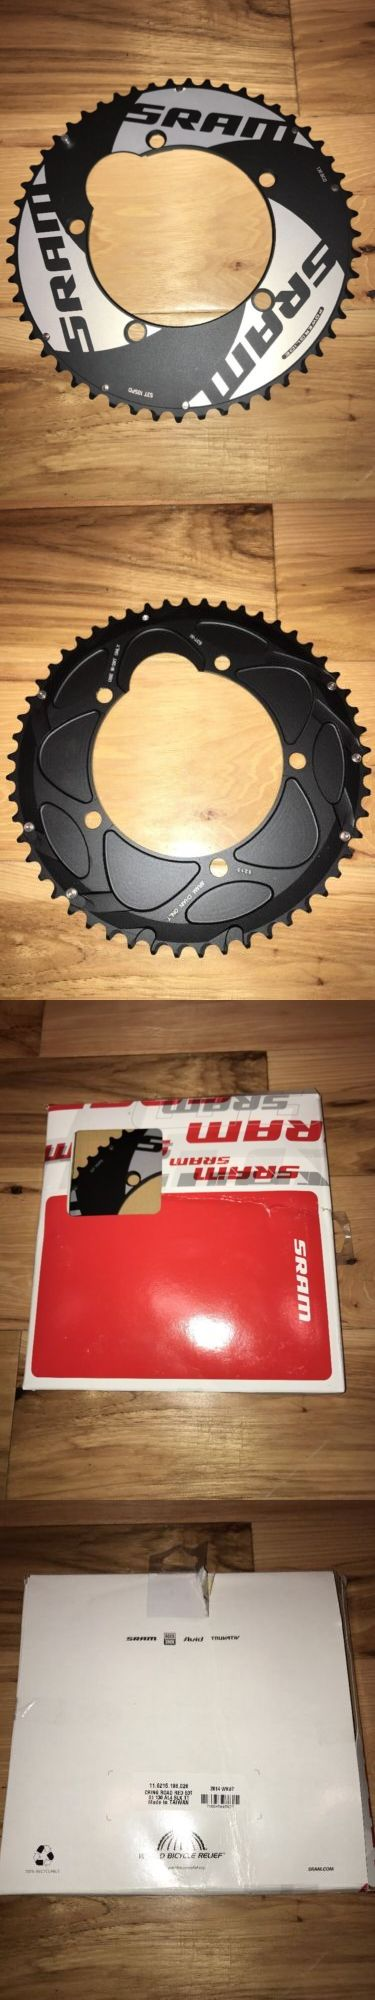 Chainrings and BMX Sprockets 177811: Sram Red Tt Time Trial 53T Chainring 10-Speed | 130Mm | Black And Silver |53-Tooth BUY IT NOW ONLY: $69.89